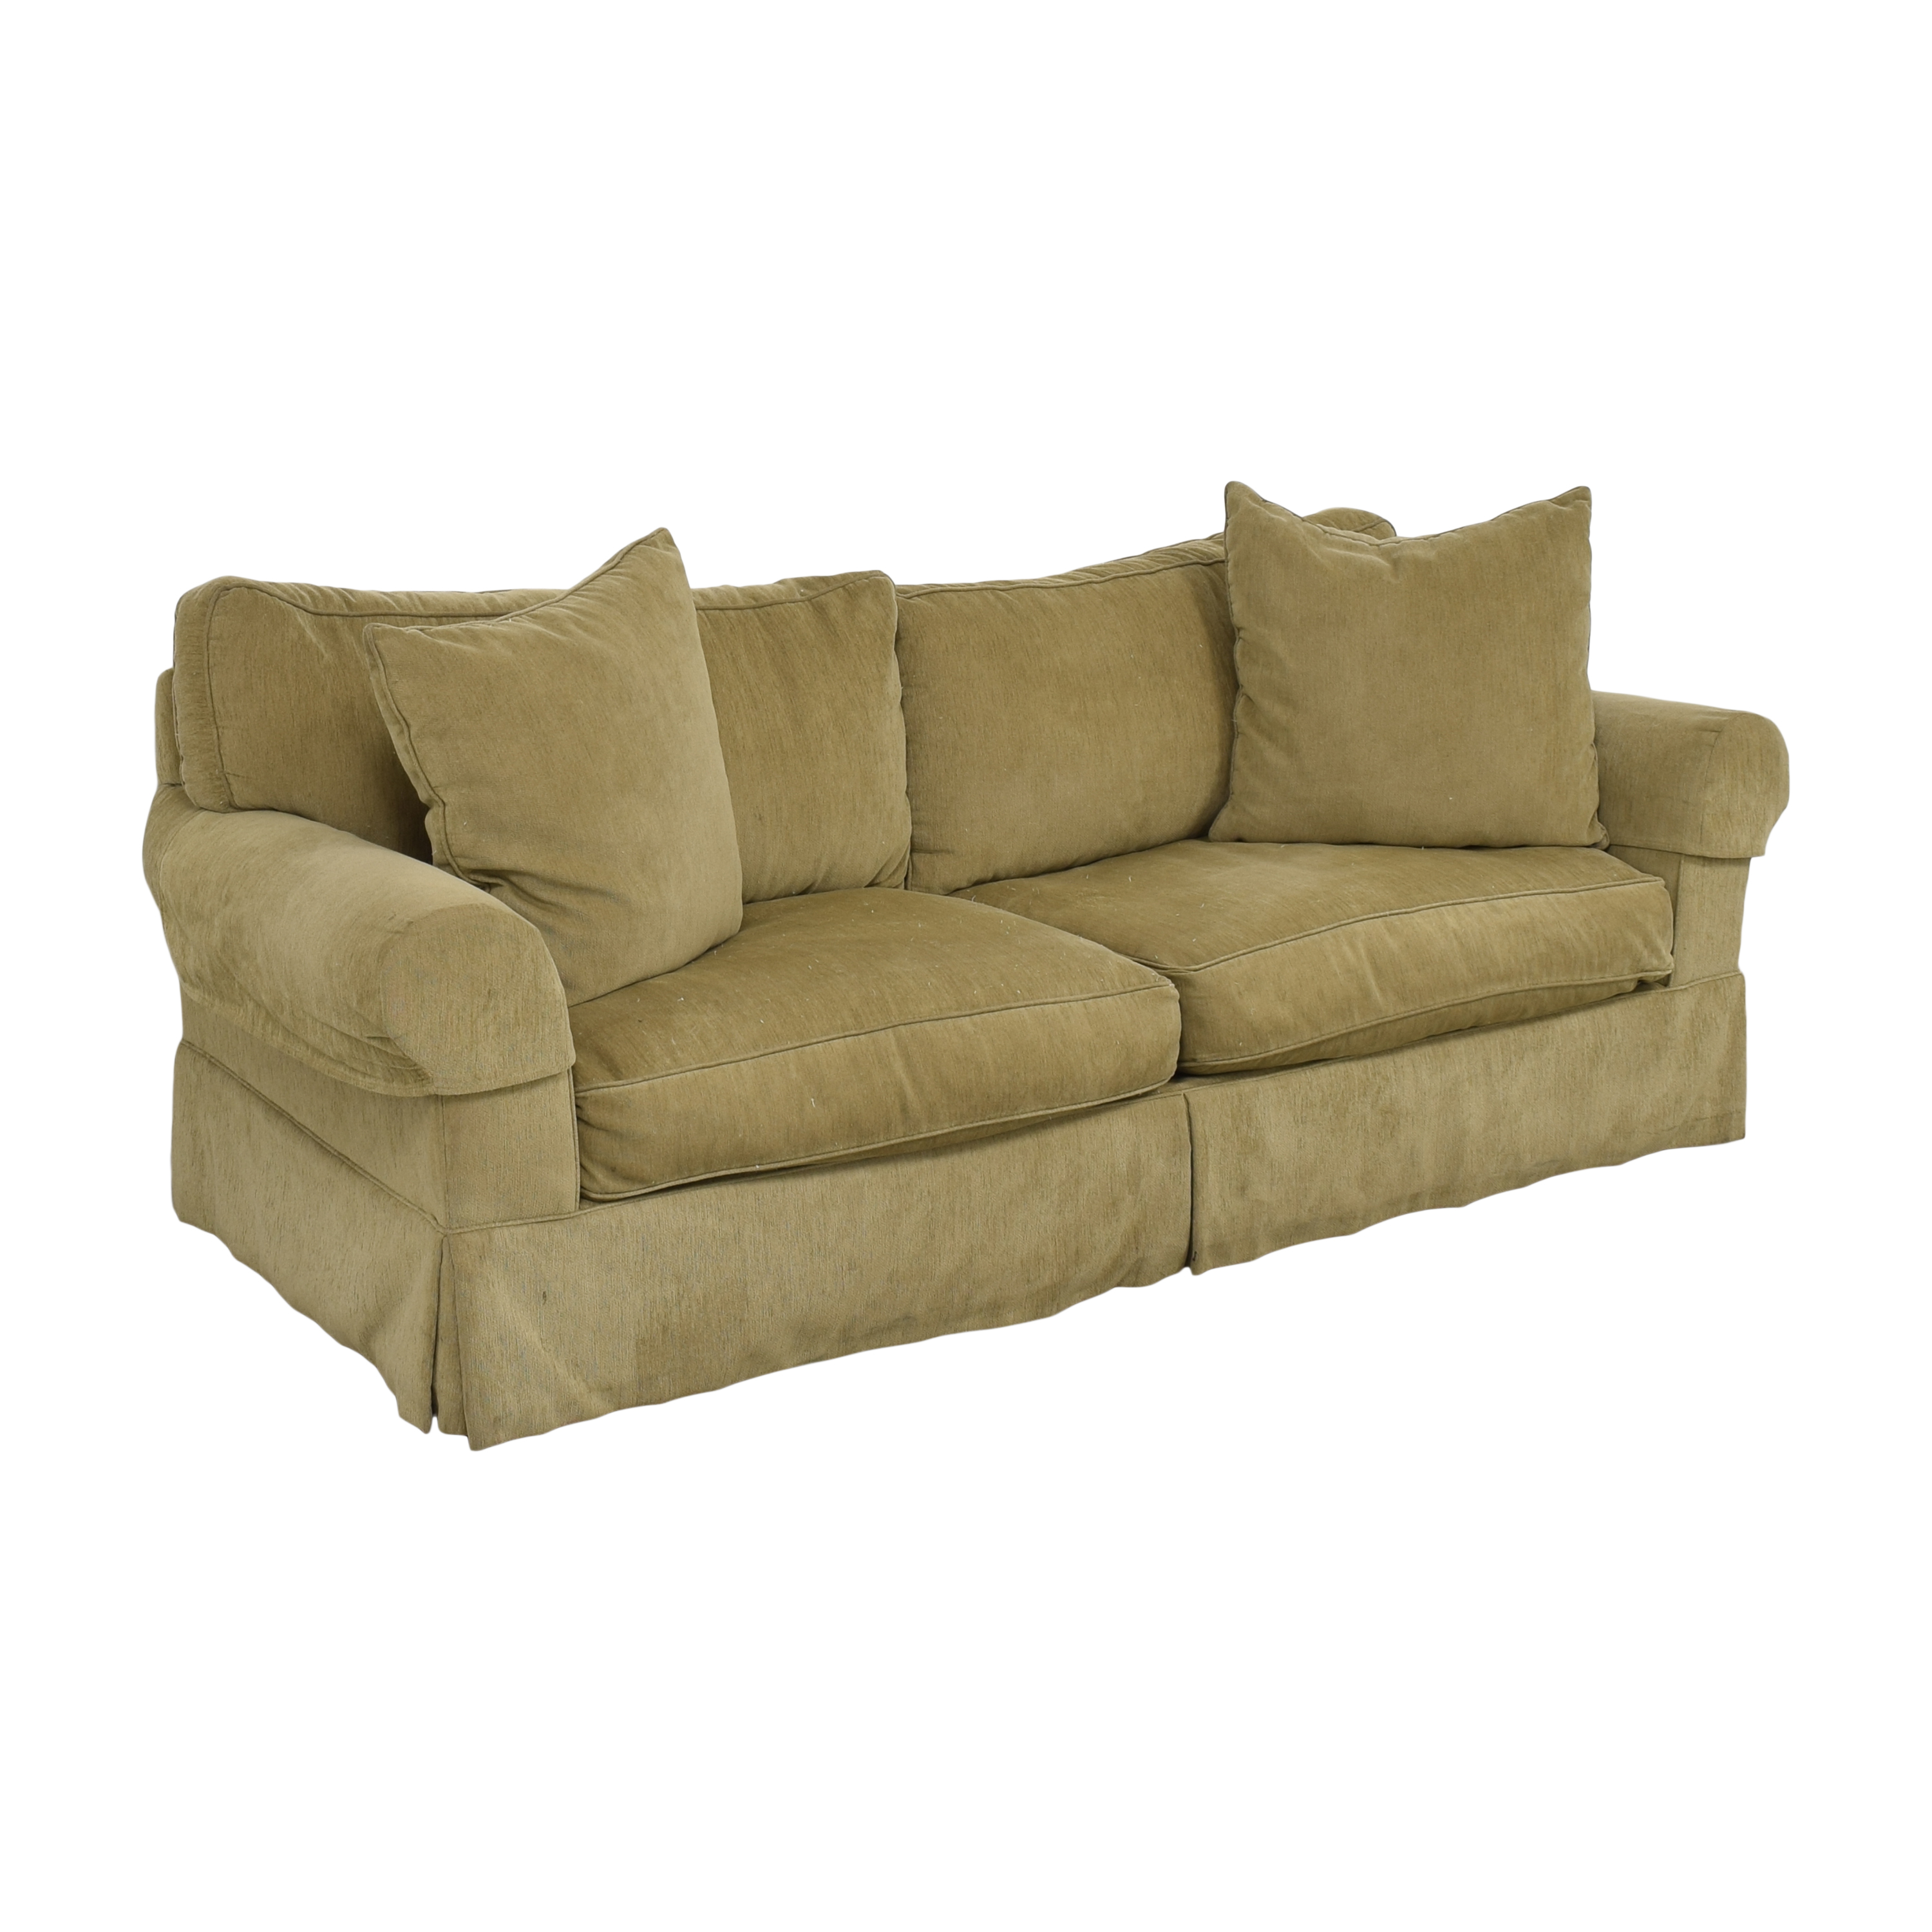 Restoration Hardware Restoration Hardware Grand Scale Roll Arm Slipcover Sofa